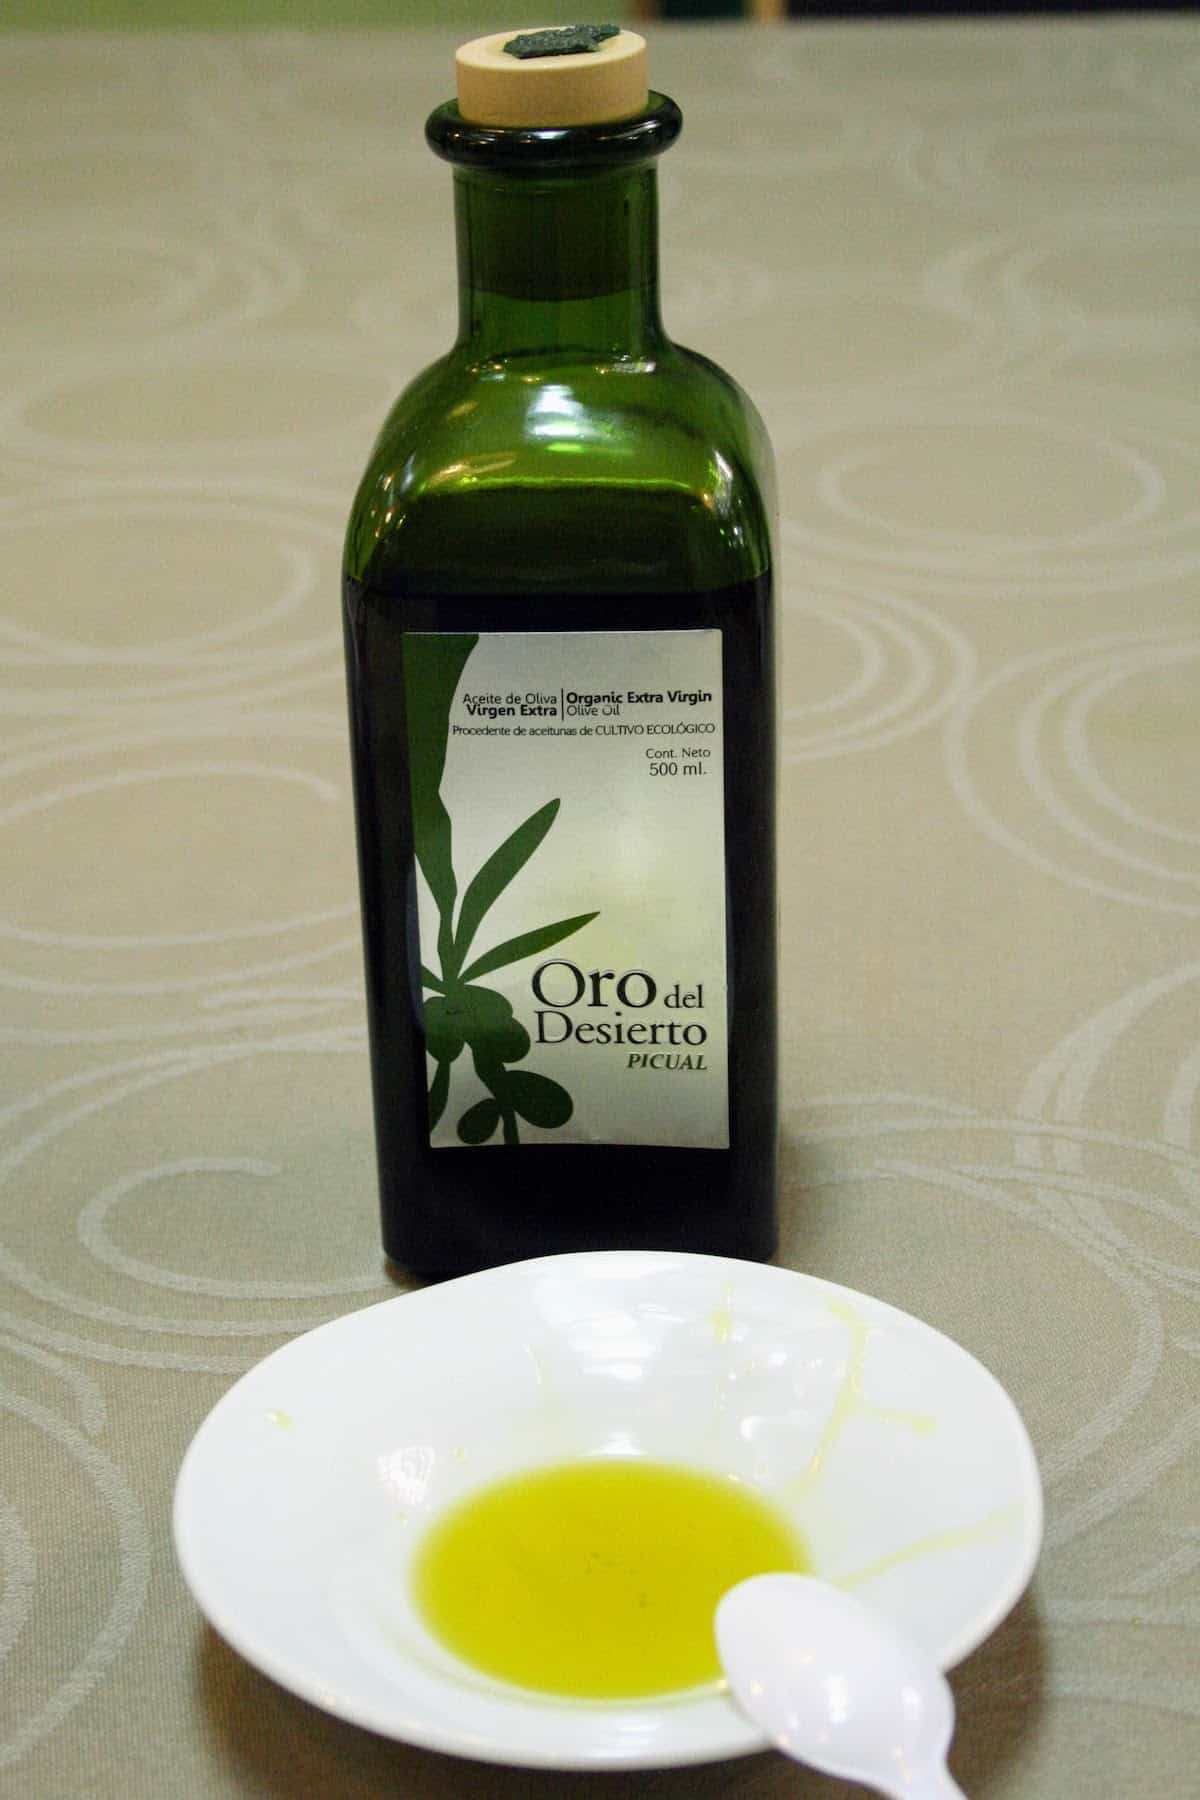 Bottle of olive oil behind a small white dish with a small amount of oil poured in.